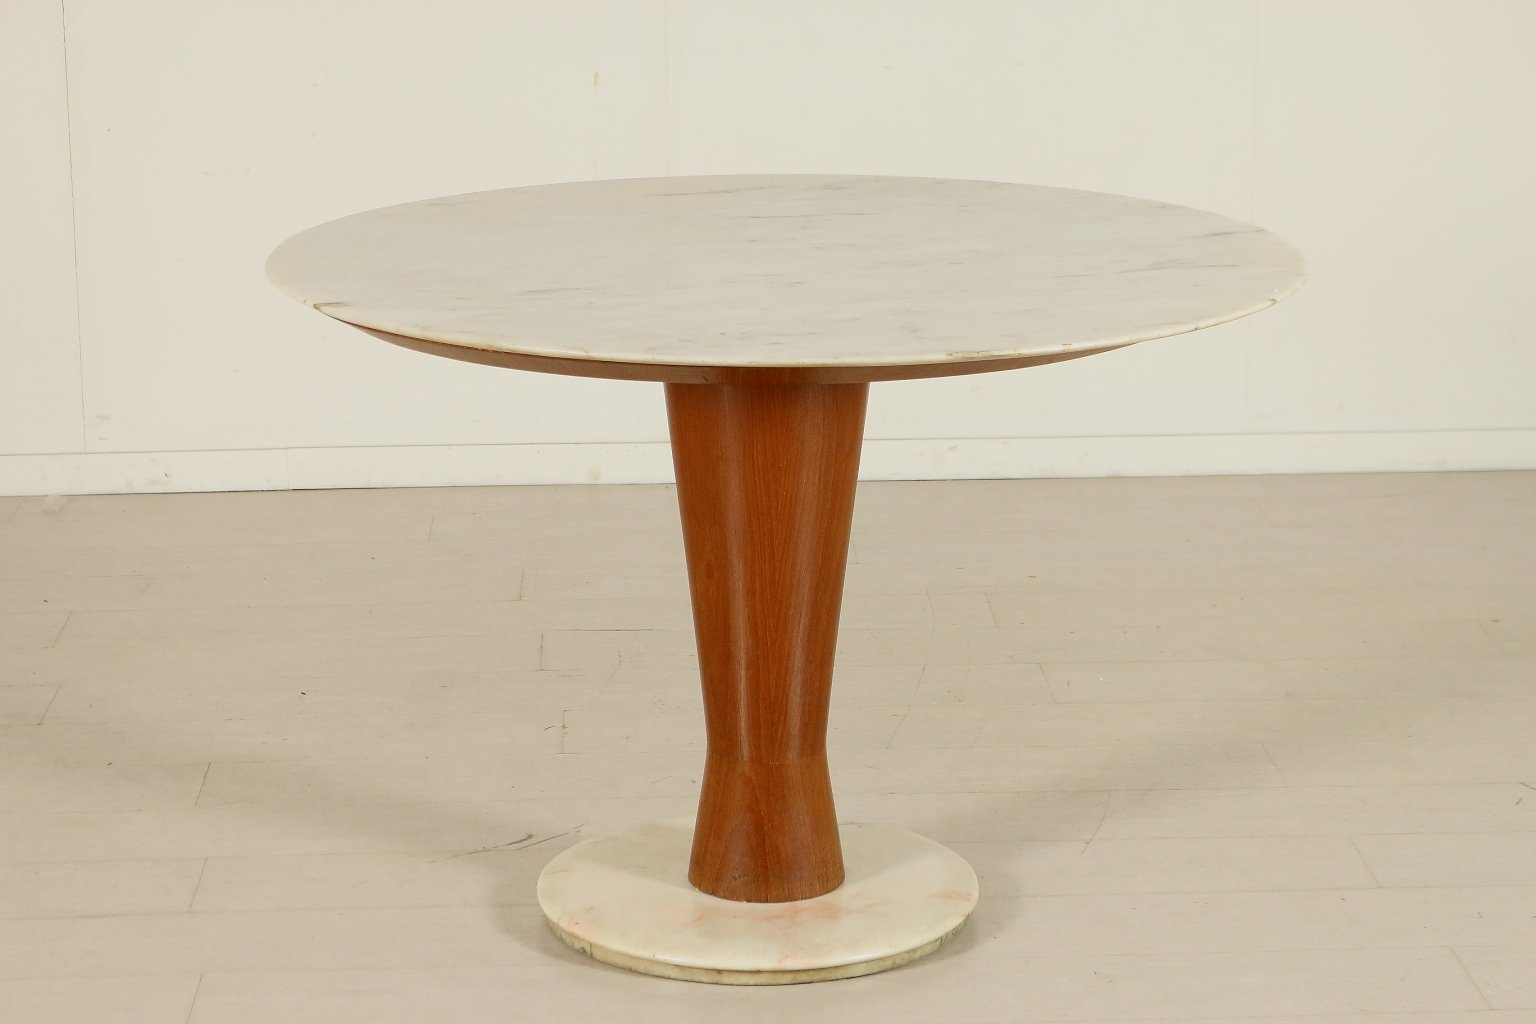 Italian mahogany marble round table 1950s for sale at for Round table 85 ortenau